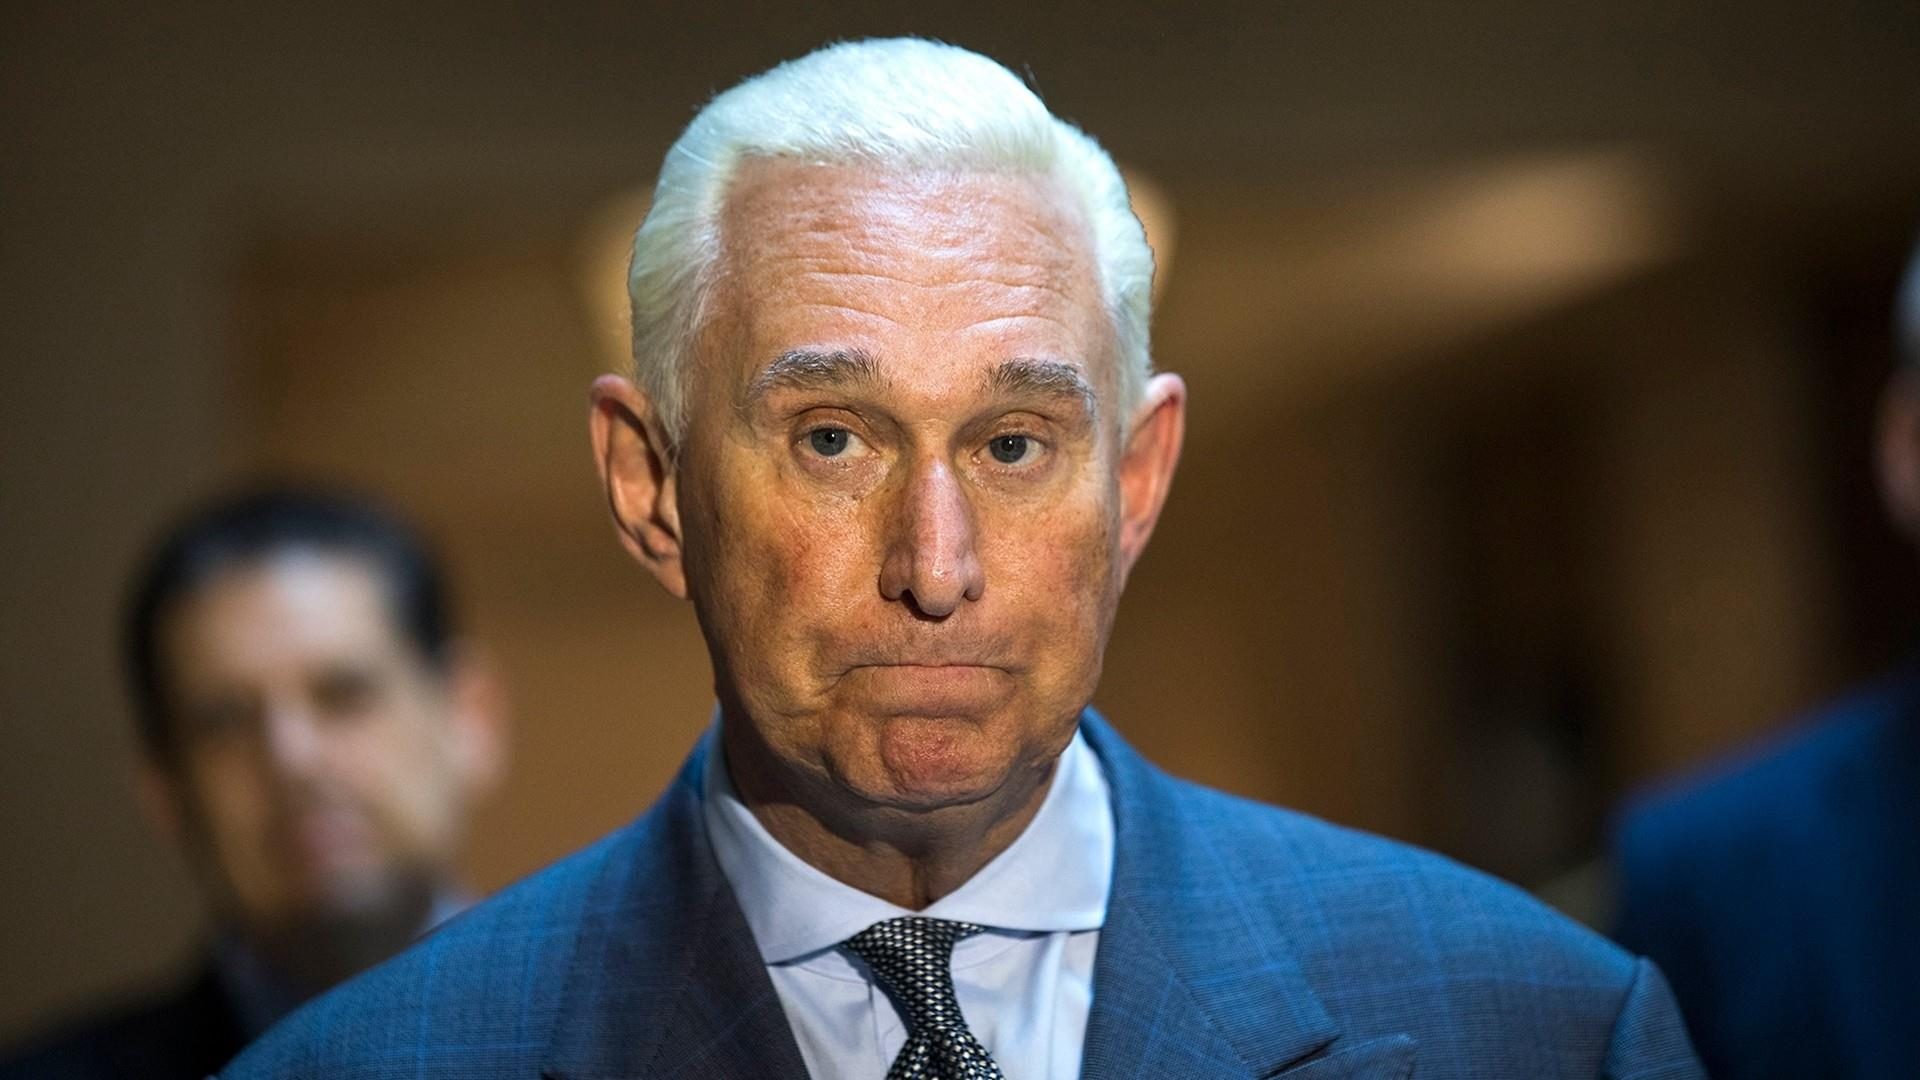 Well Done': Stone indictment details his contacts with Trump camp